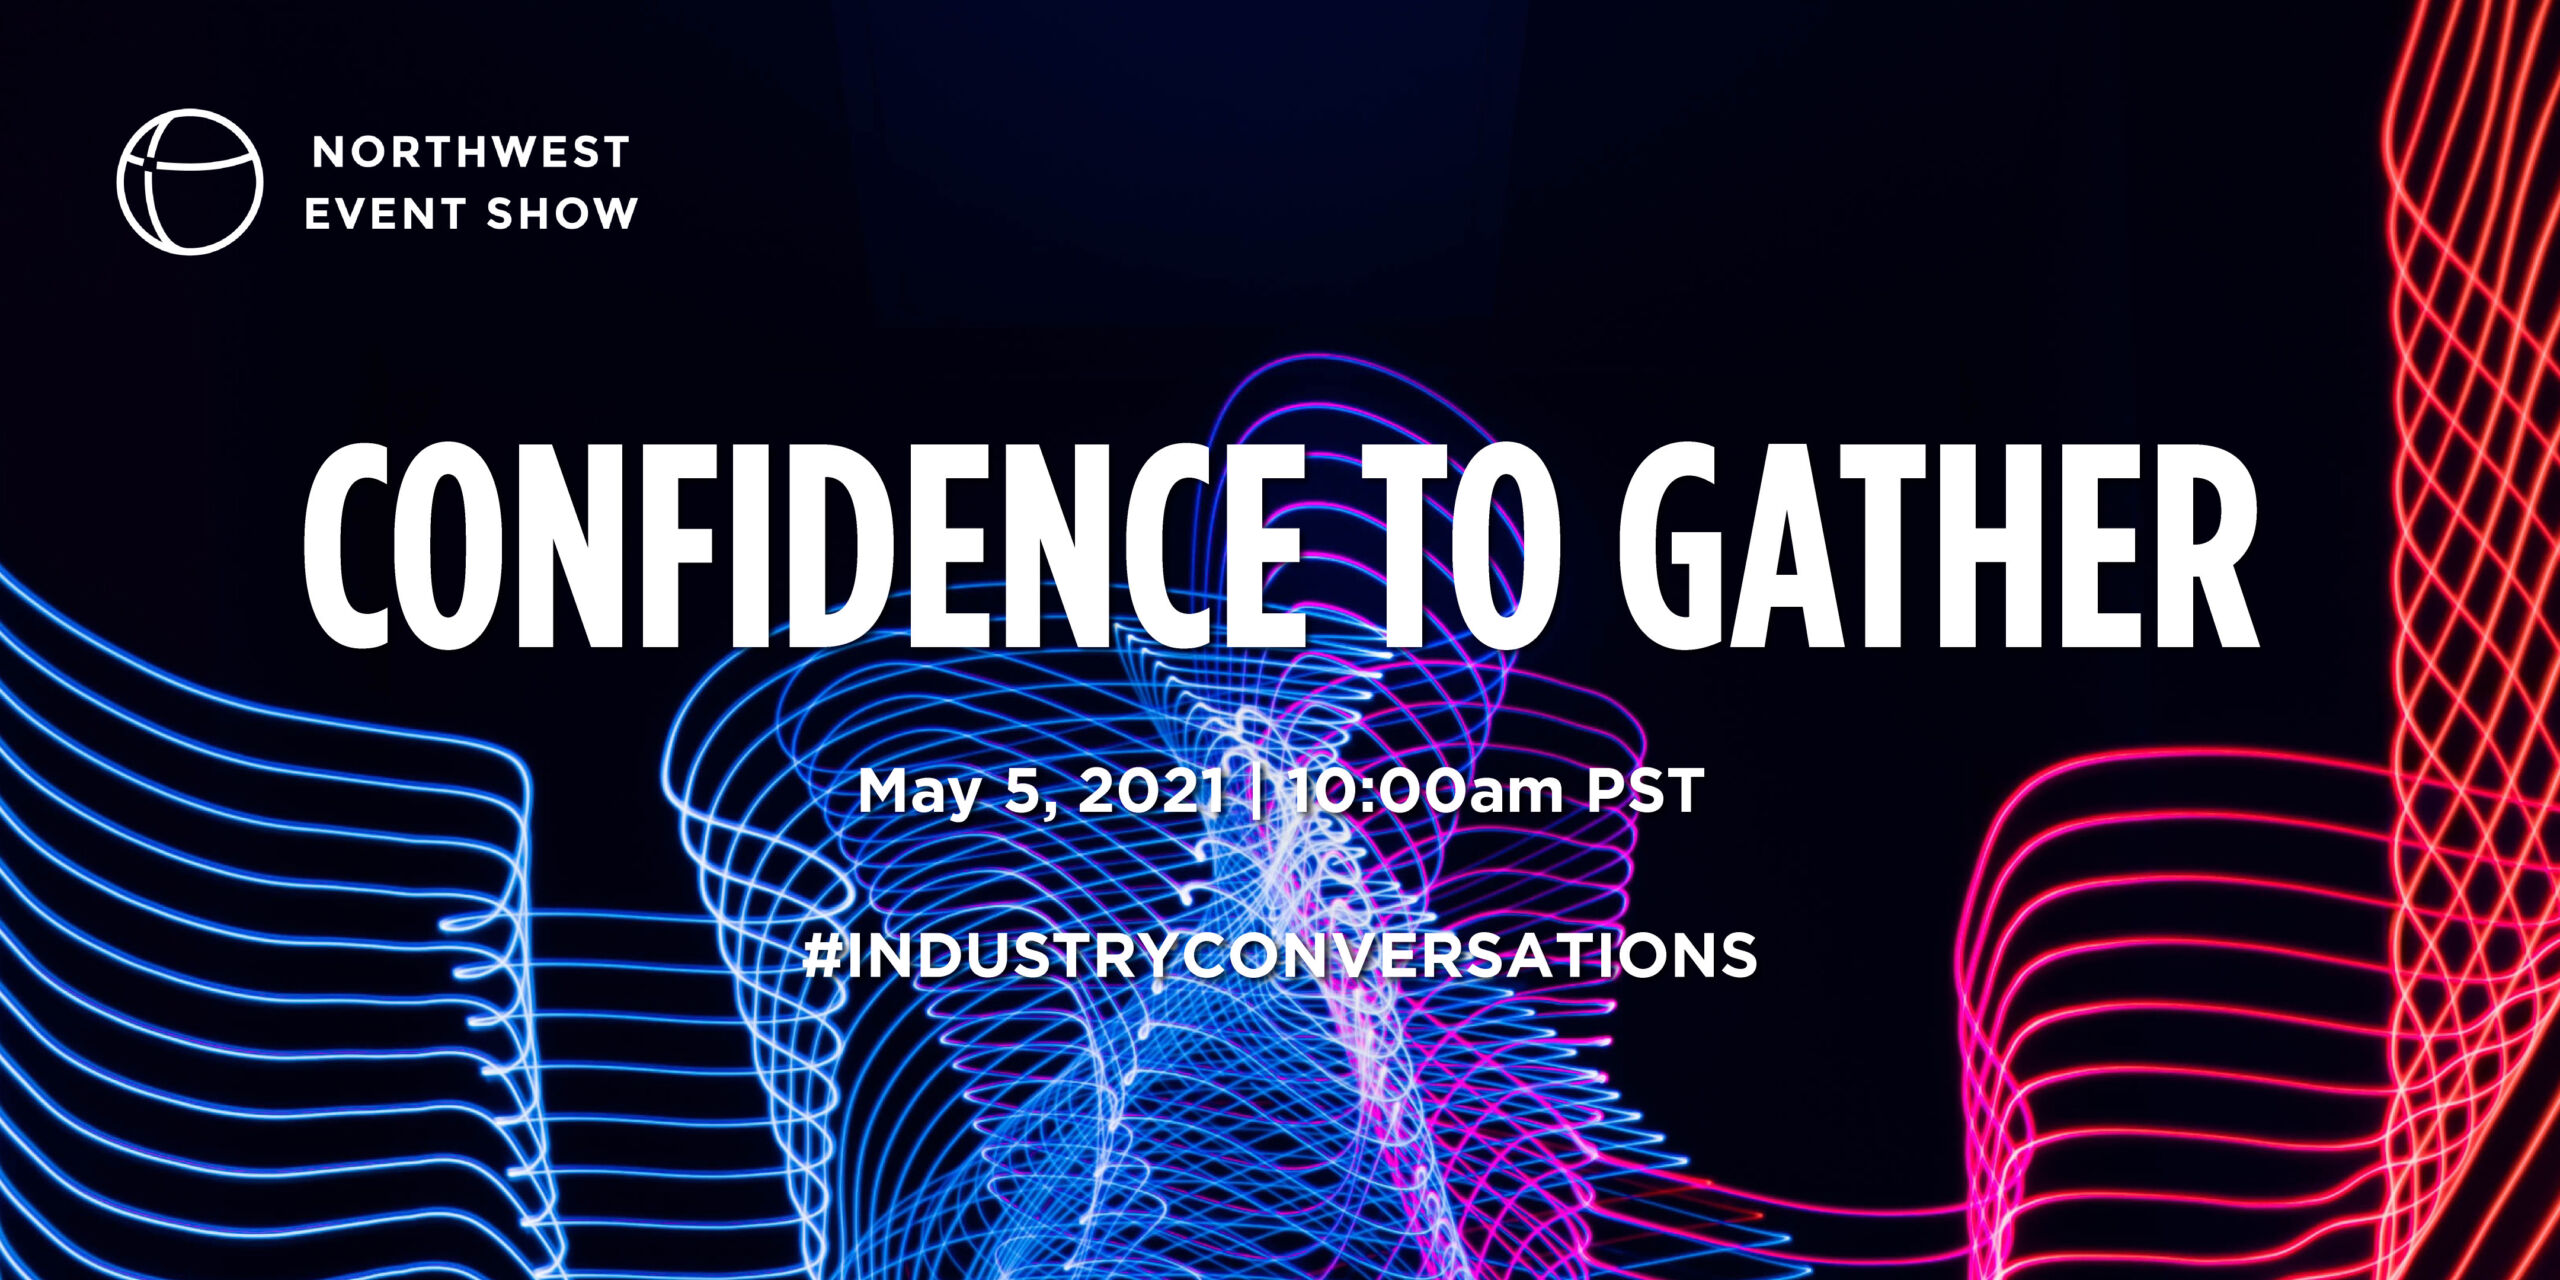 Industry Conversations: Confidence to Gather